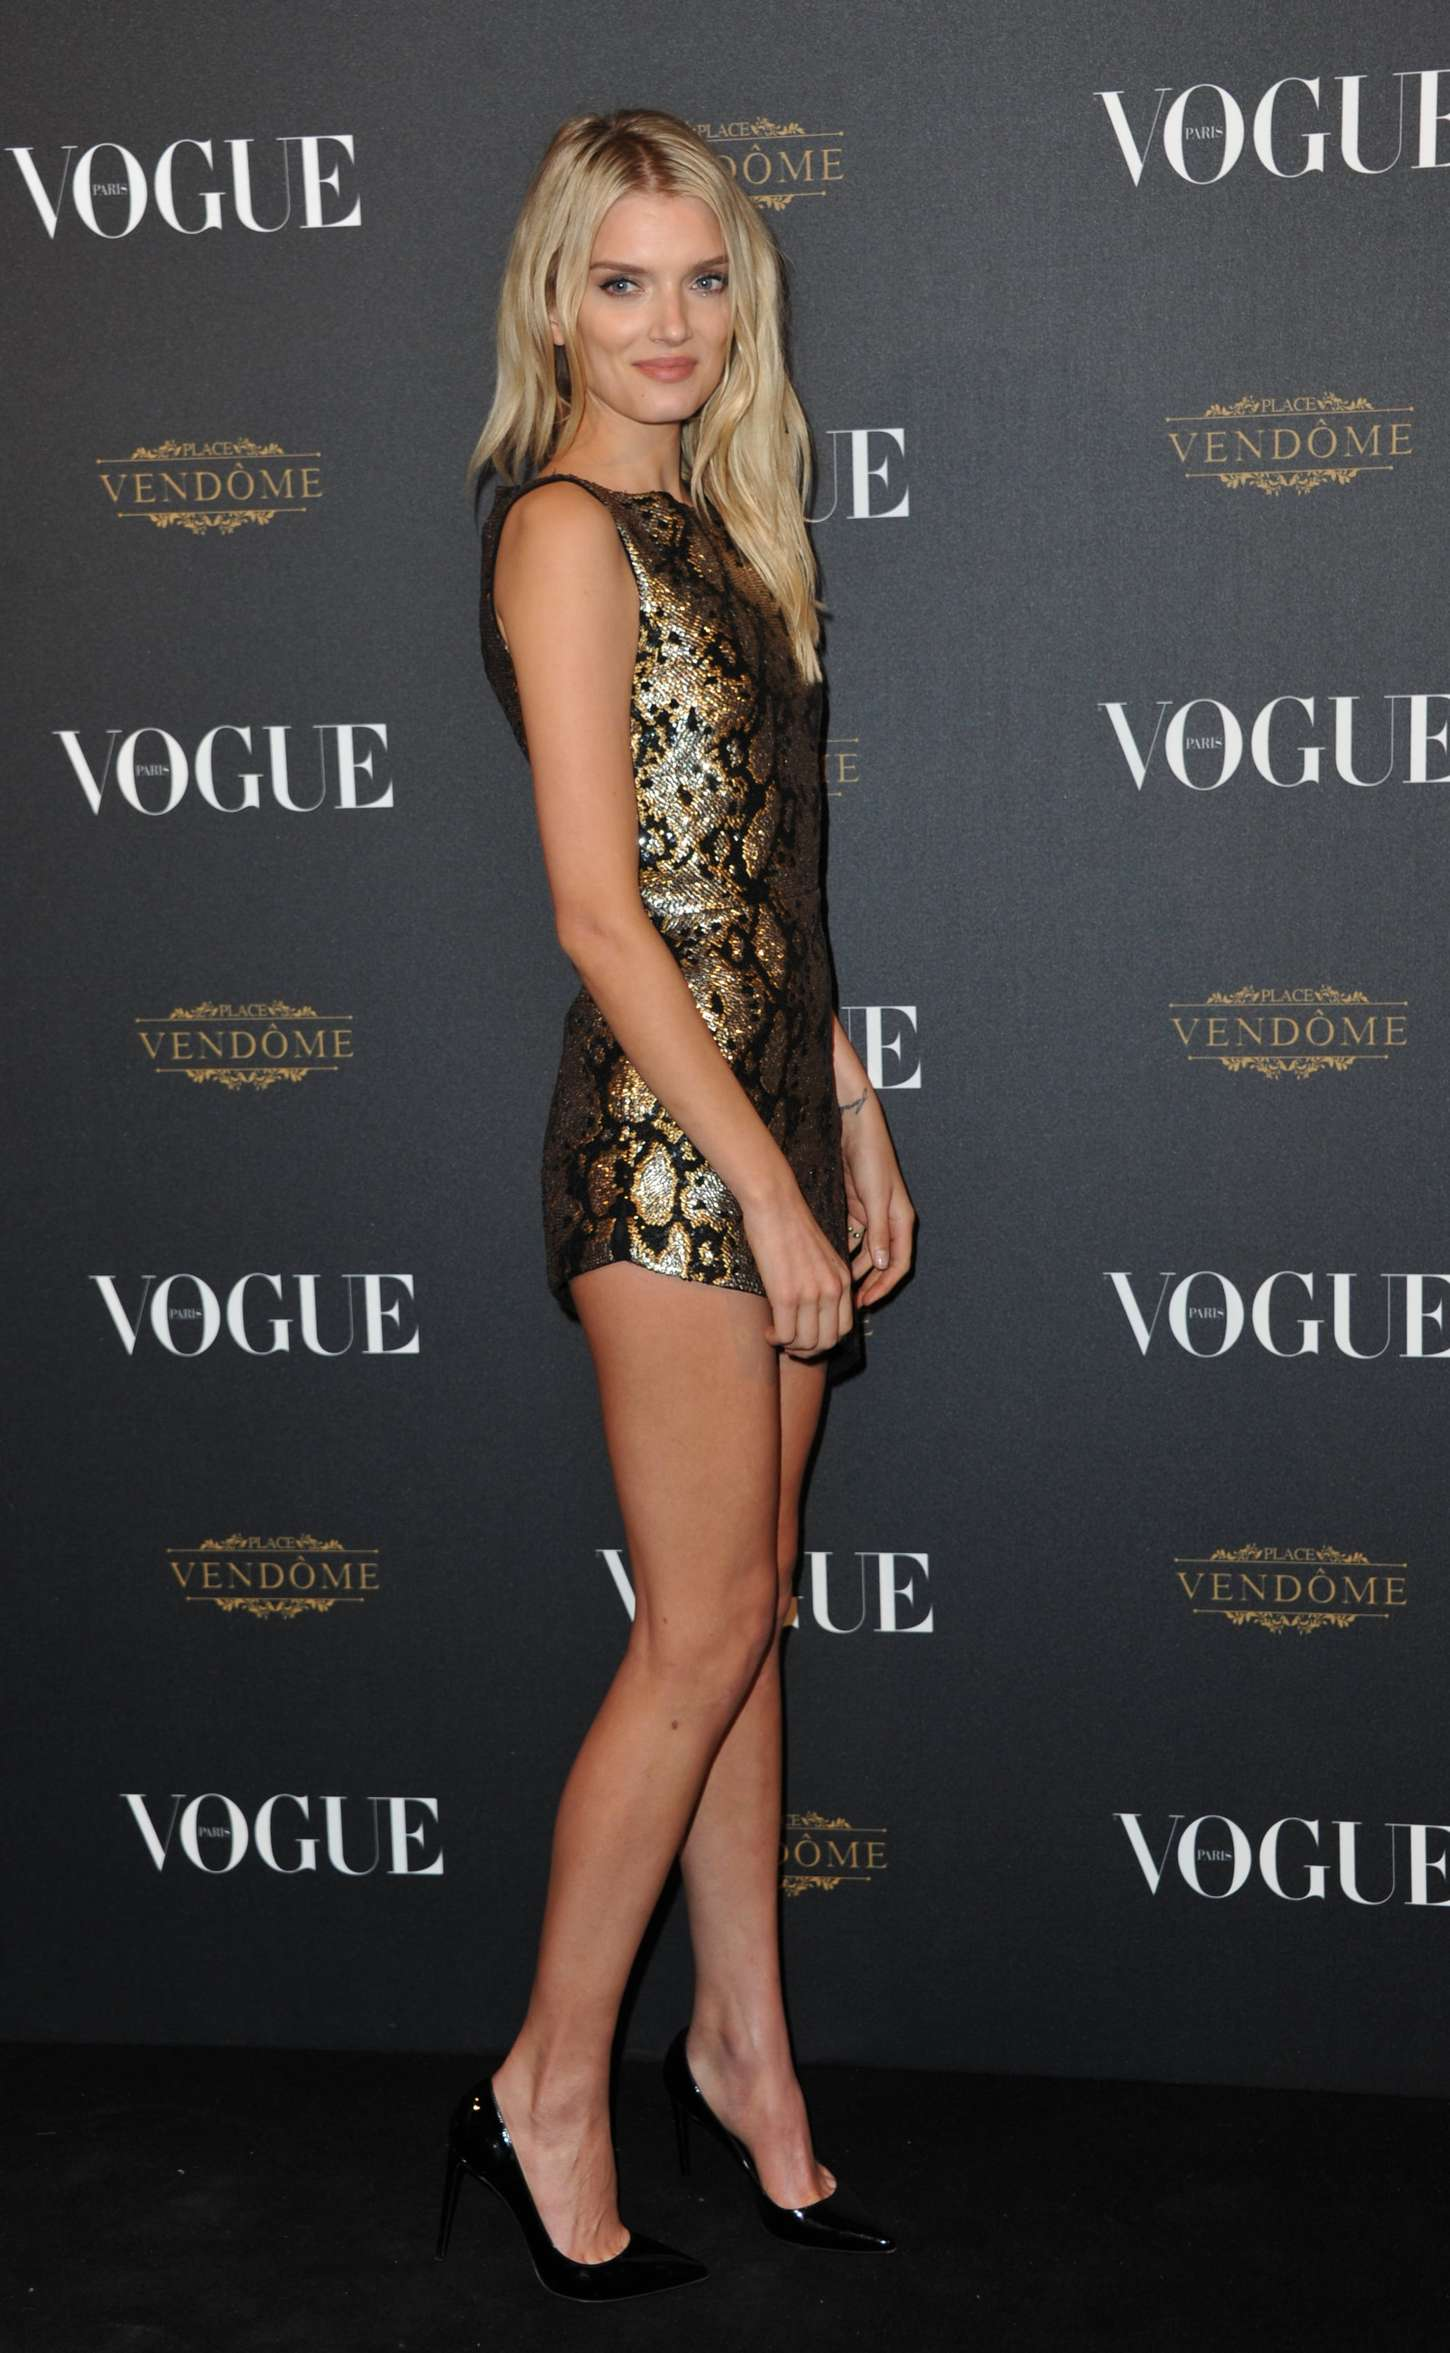 Lily Donaldson - Vogue 95th Anniversary Party in Paris